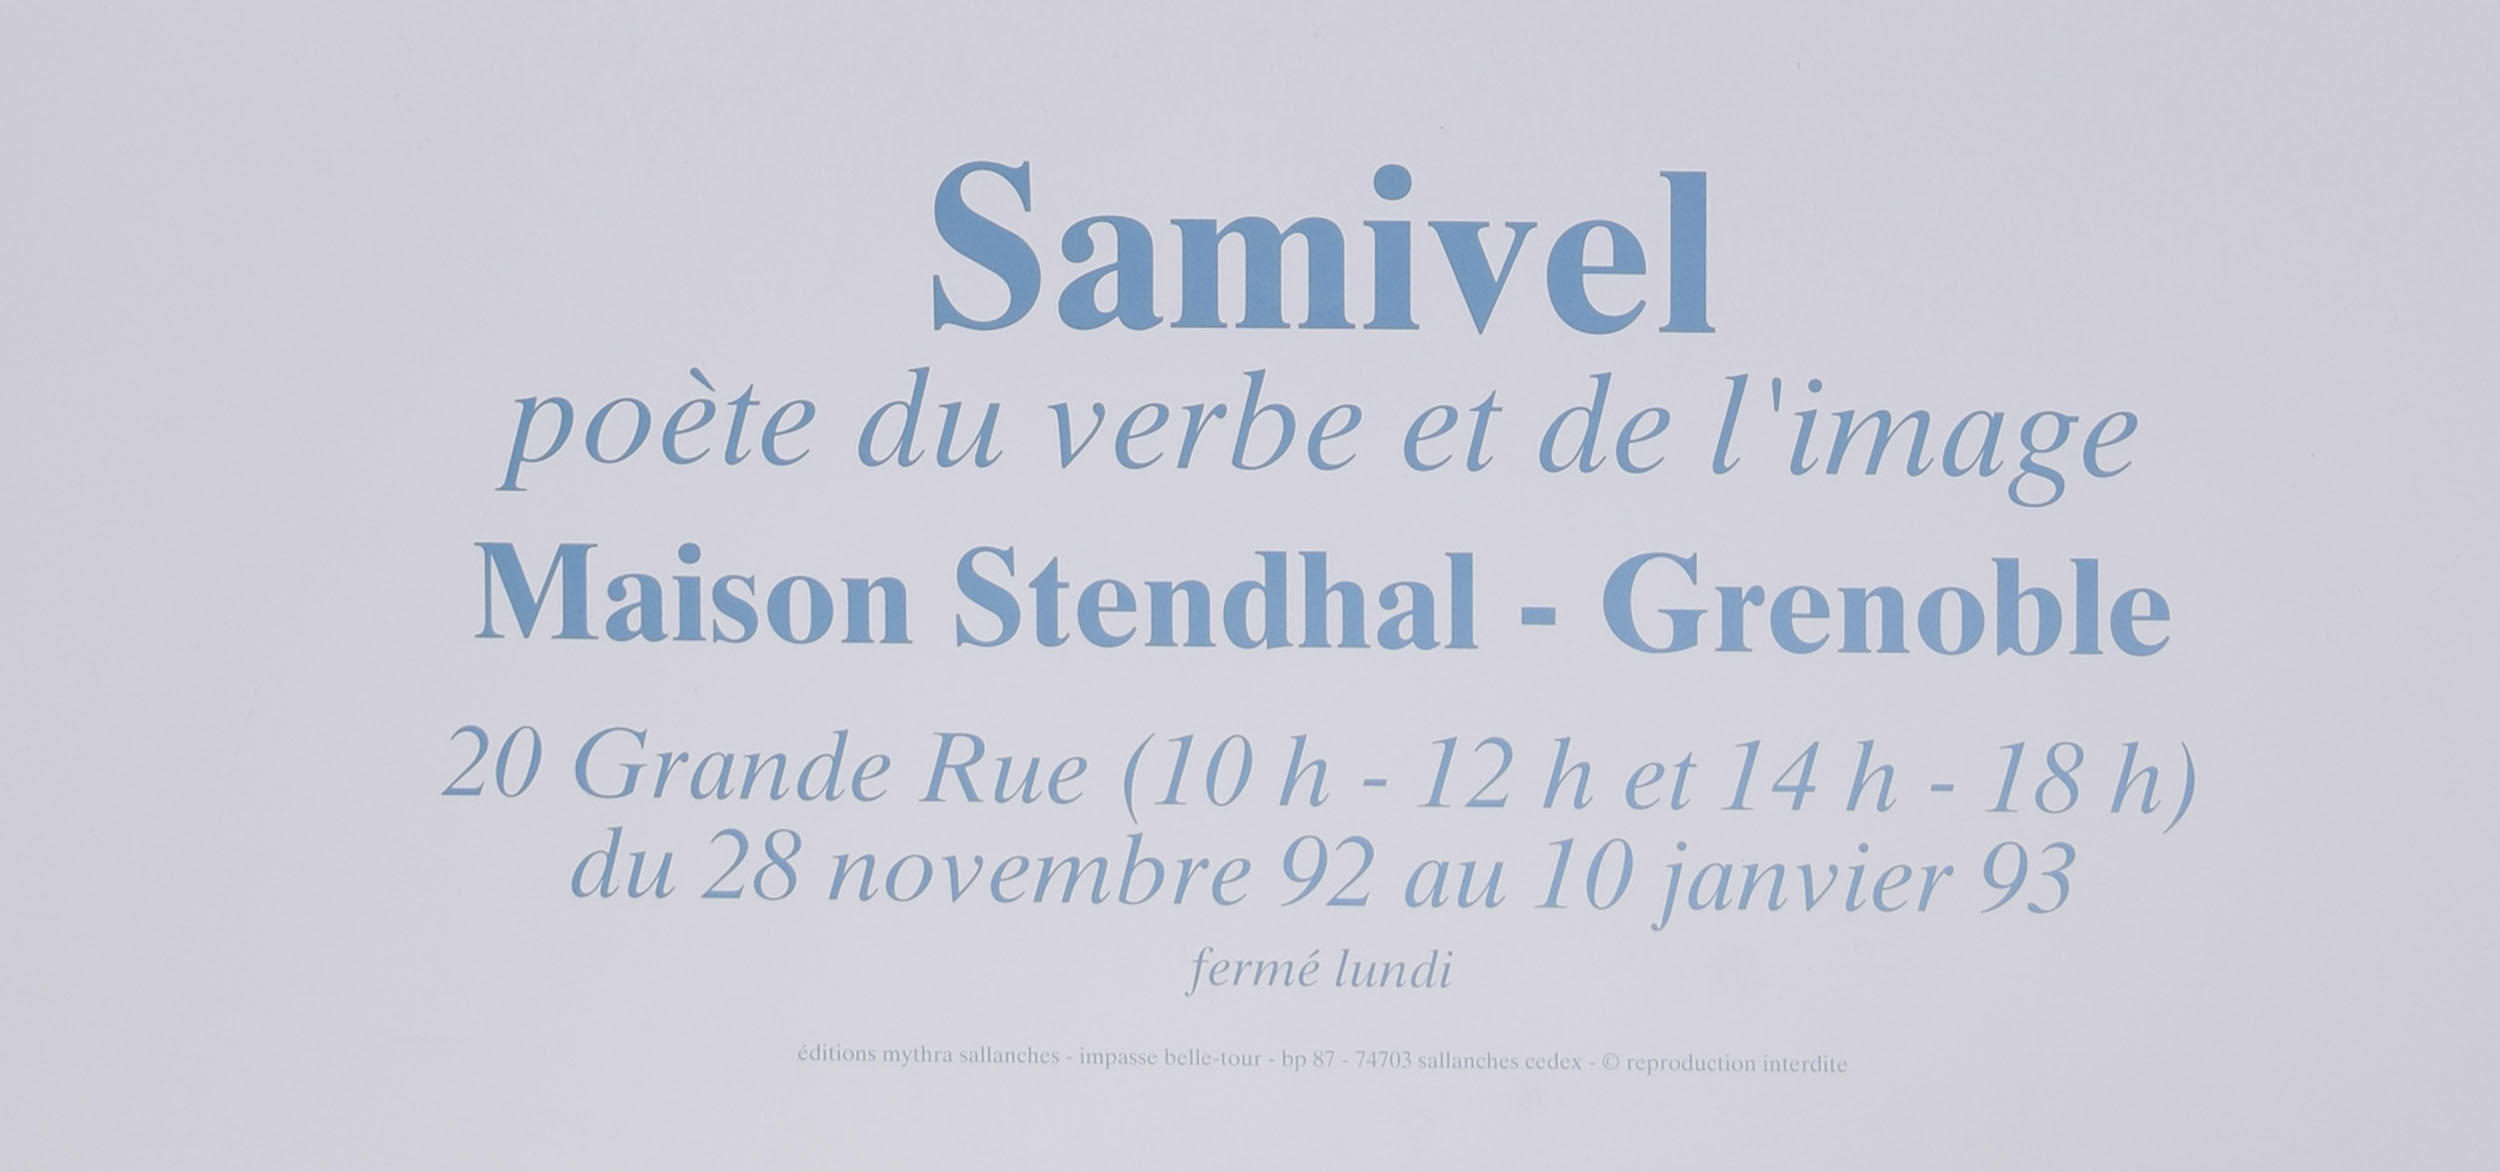 """'Samivel' Paul Gayet-Tancrède, The Poet of the Word and the Image, An exhibition: """"At the true summit"""" poster"""